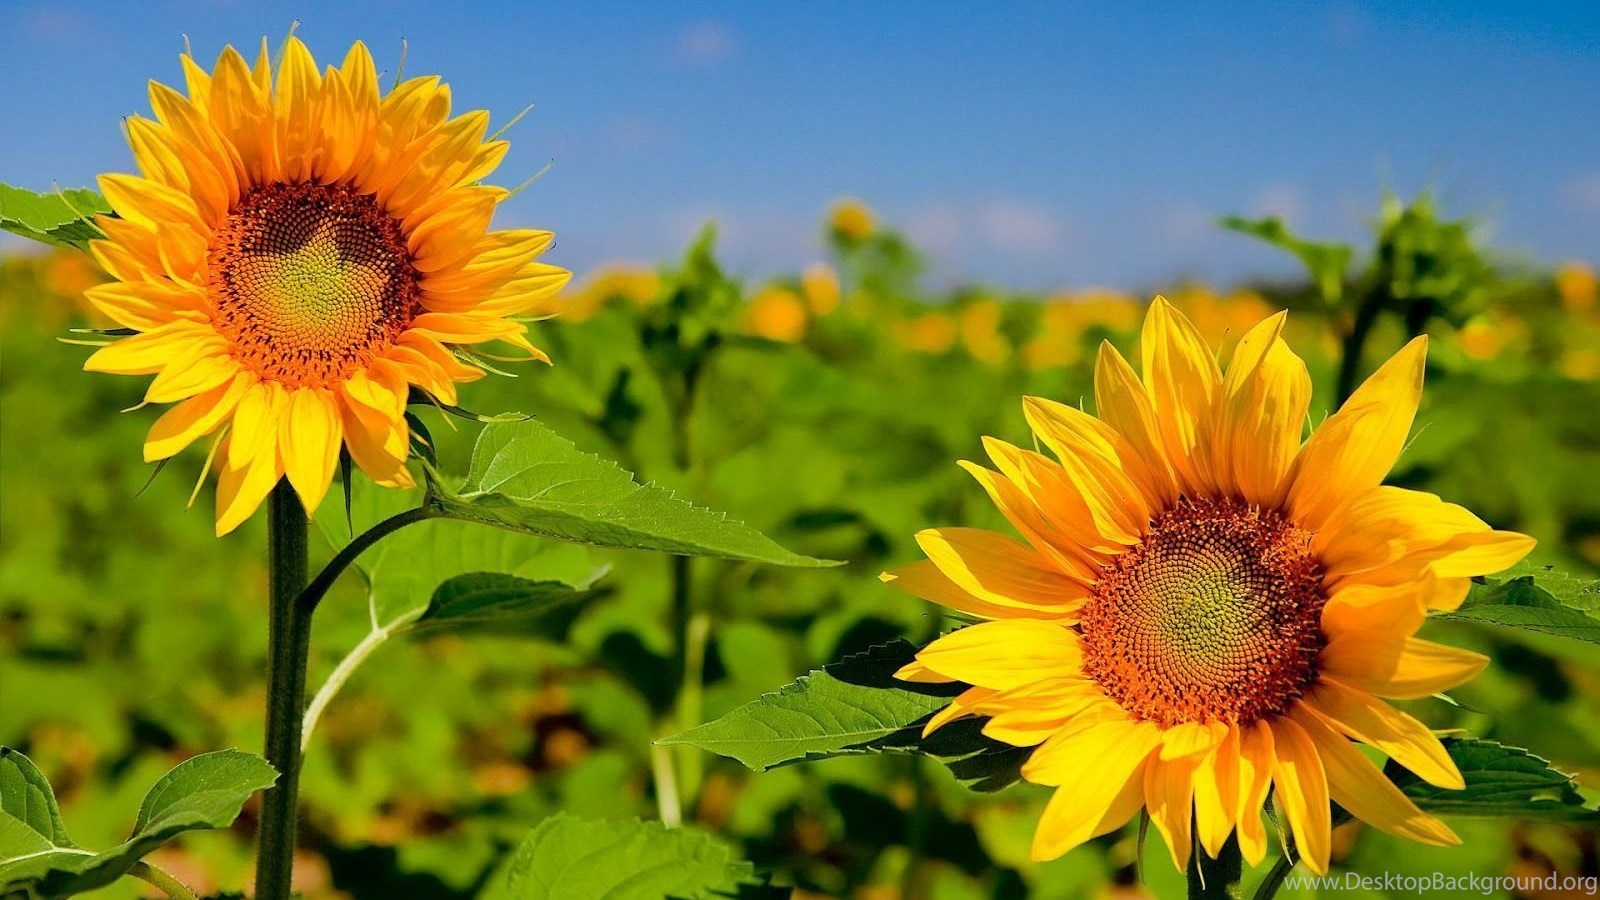 hd best desktop wallpapers: sunflower wallpapers desktop background